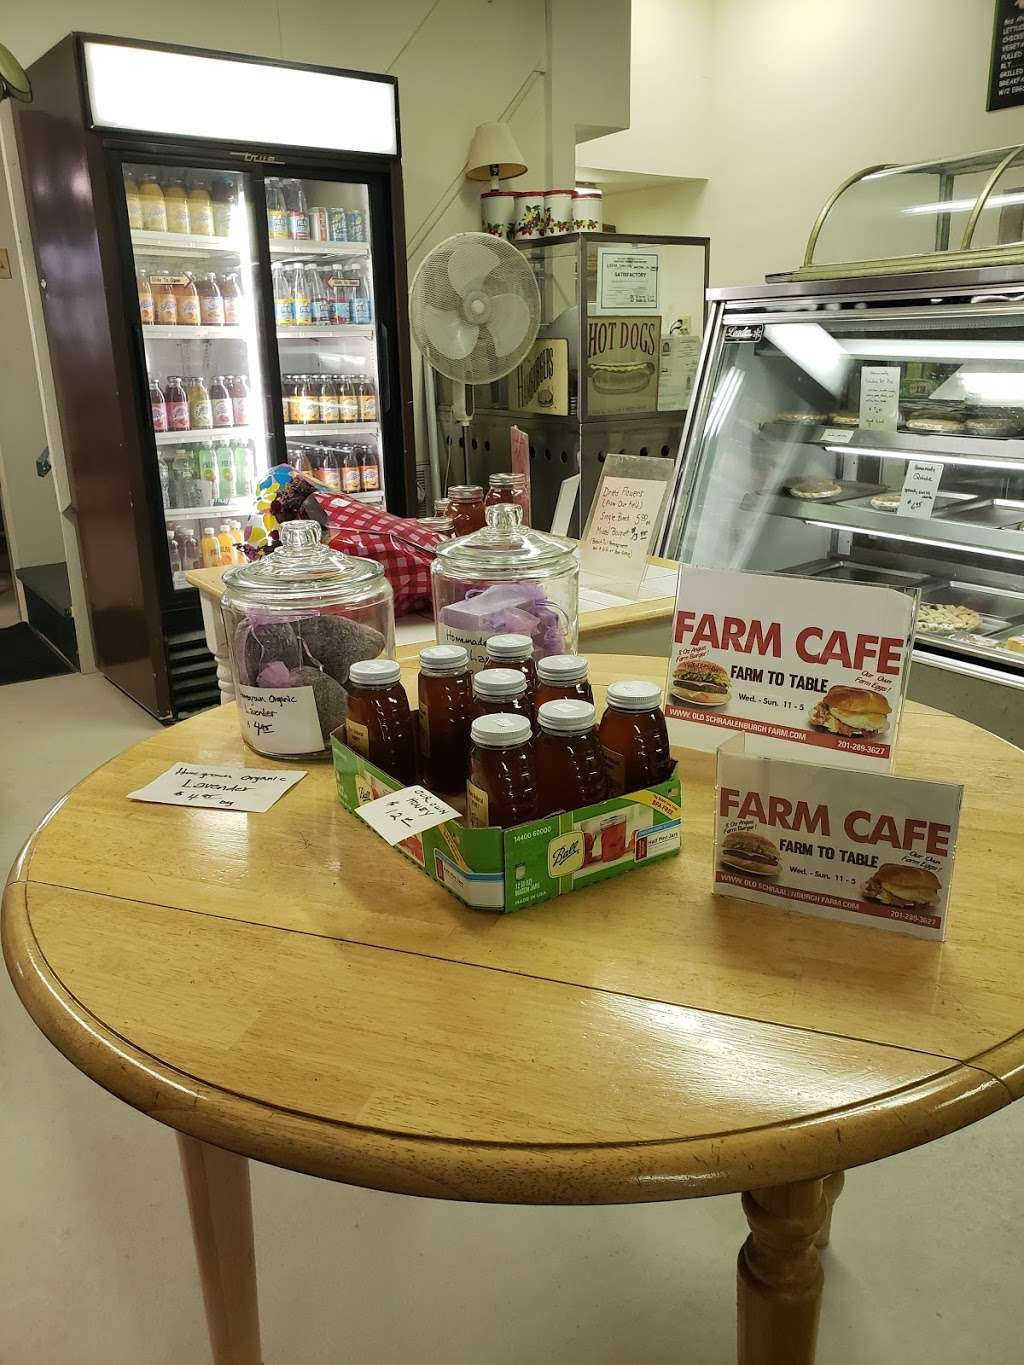 Farm Cafe - cafe  | Photo 8 of 10 | Address: 40 Old Hook Rd, Closter, NJ 07624, USA | Phone: (201) 289-3627